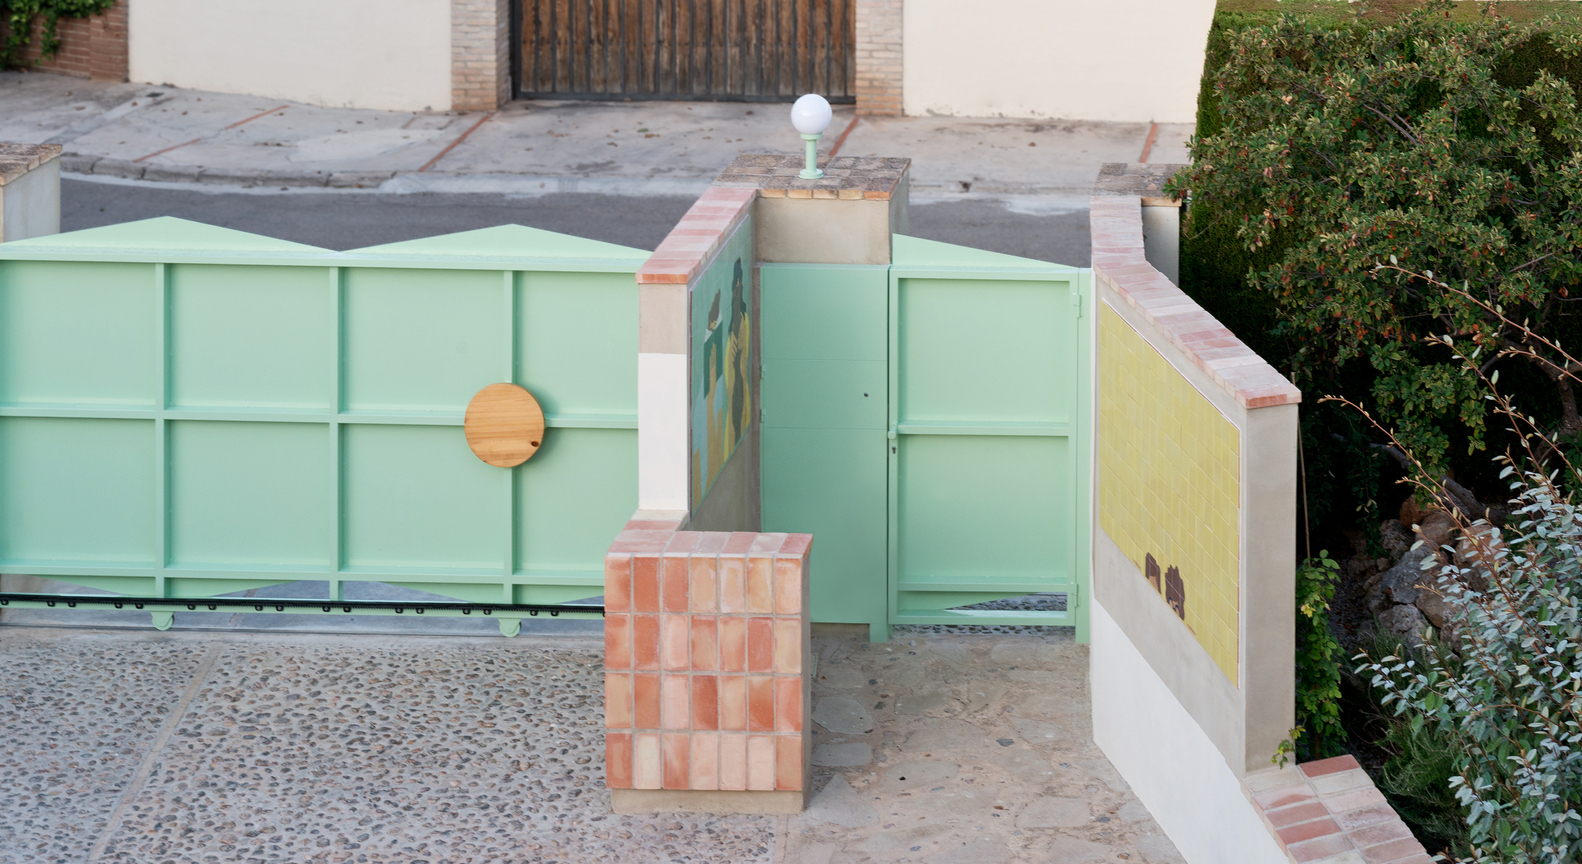 10 Different Projects That Feature the Color Green! - A Door for my Parents / Genoveva Carrión Ruiz